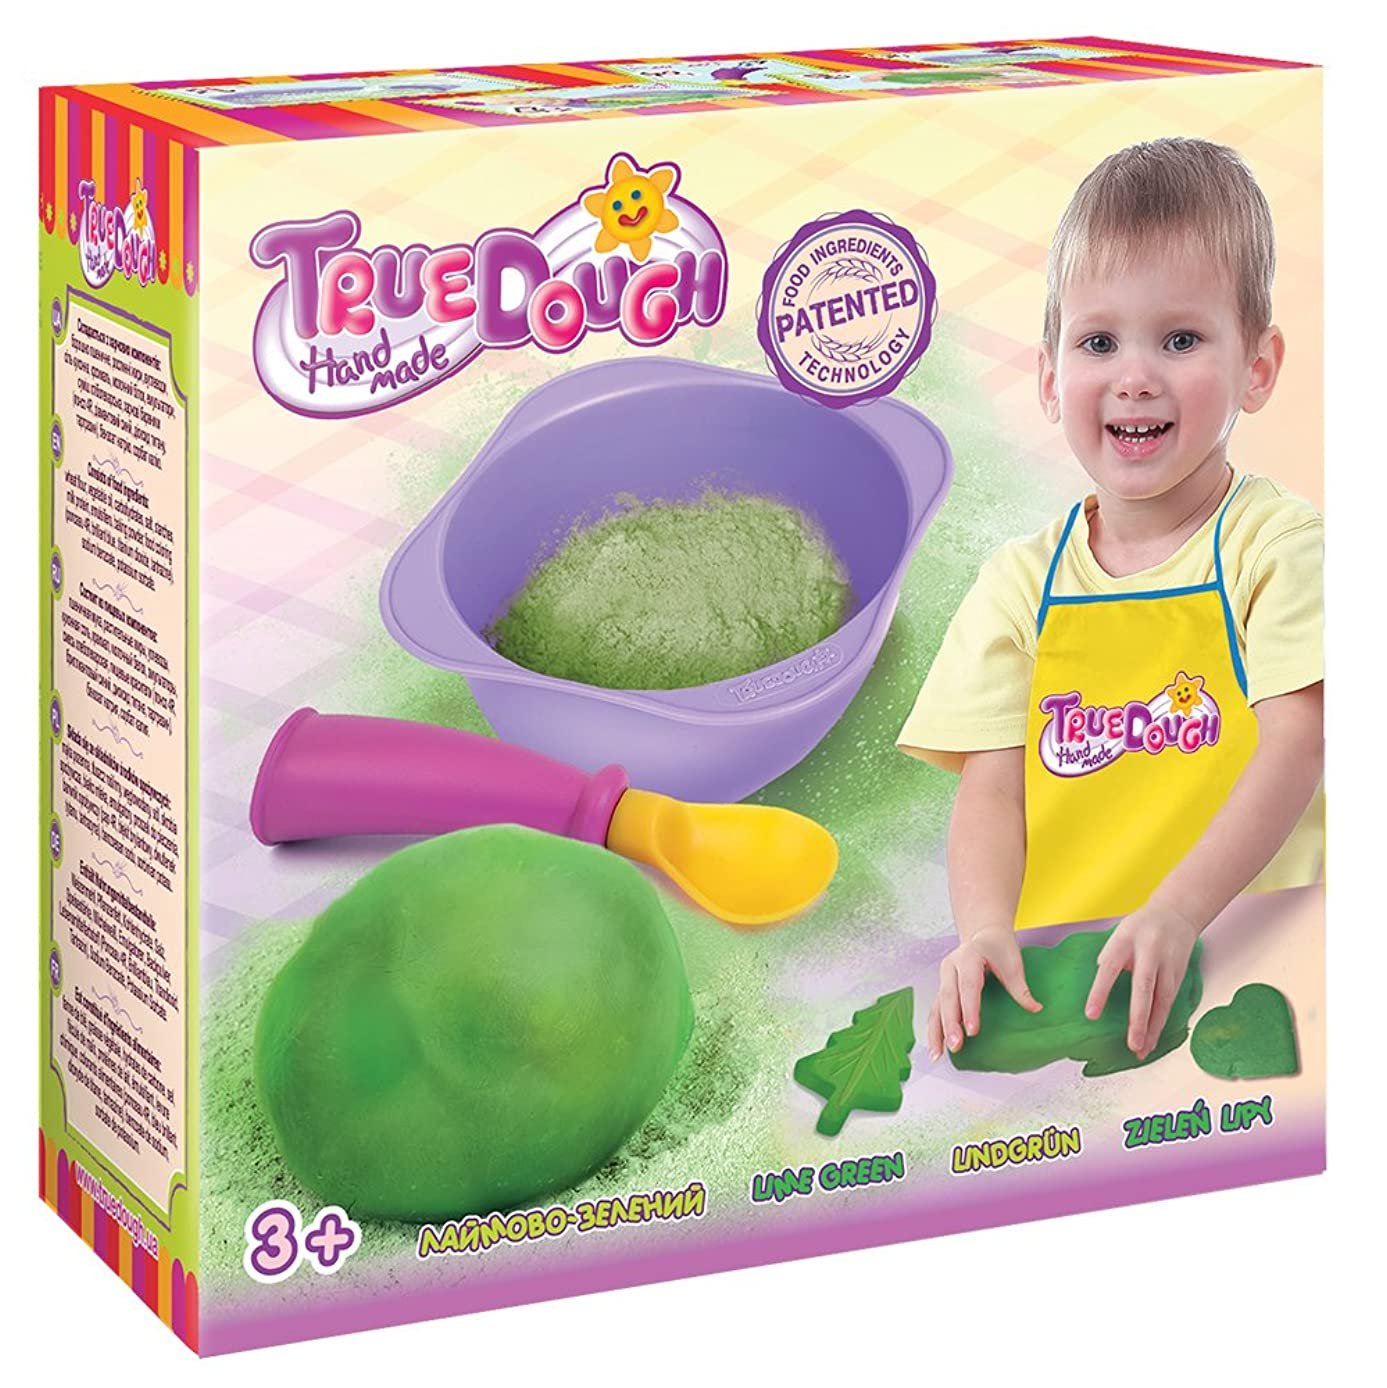 TrueDOUGH 21016 Make Your Own Modelling Dough Single Pack Set, Lime Green